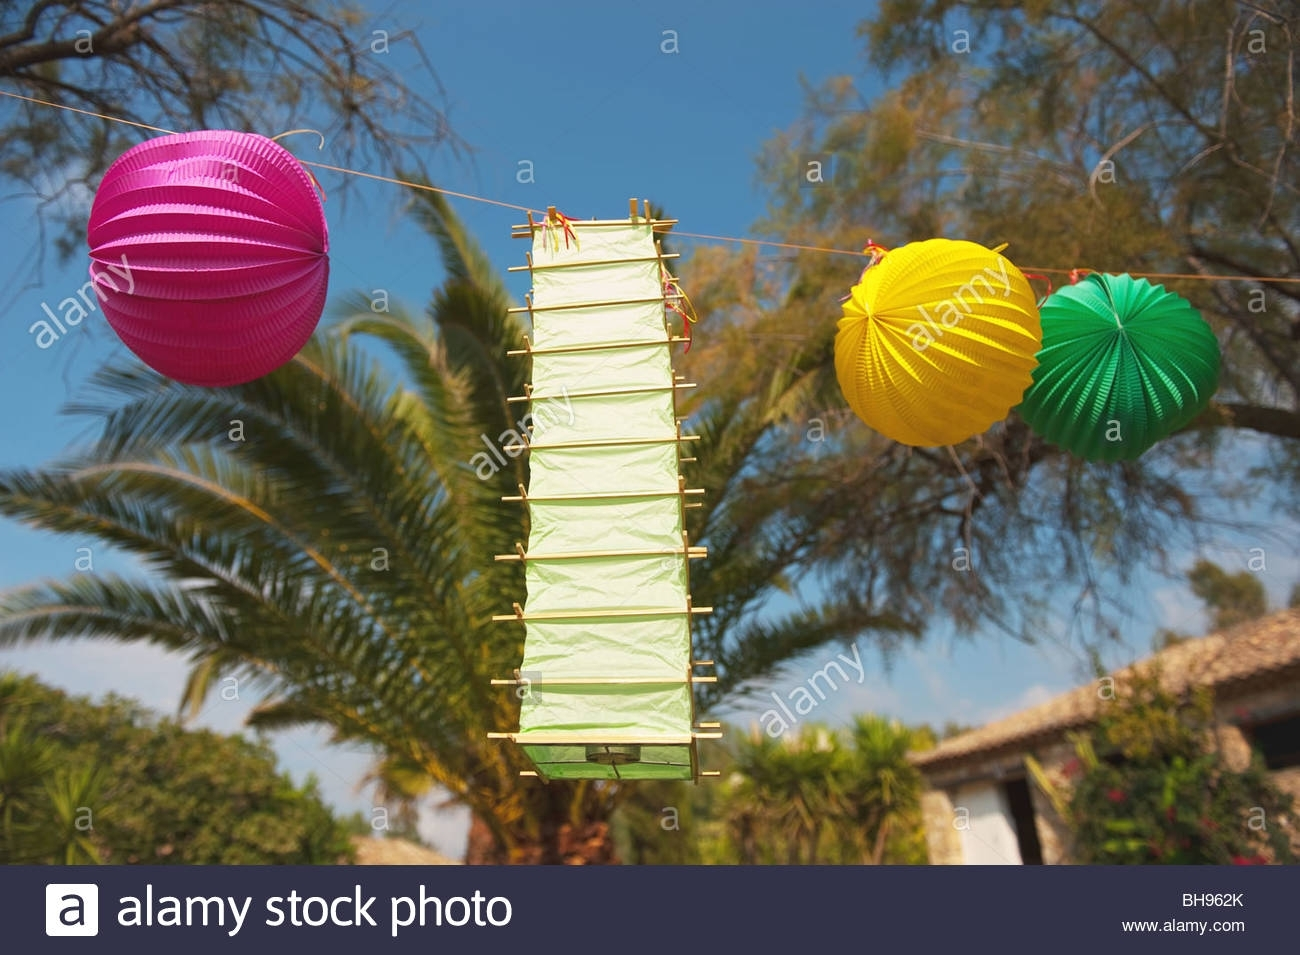 Tropical Party Outdoor In The Garden With Chinese Lanterns Stock intended for Outdoor Tropical Lanterns (Image 20 of 20)